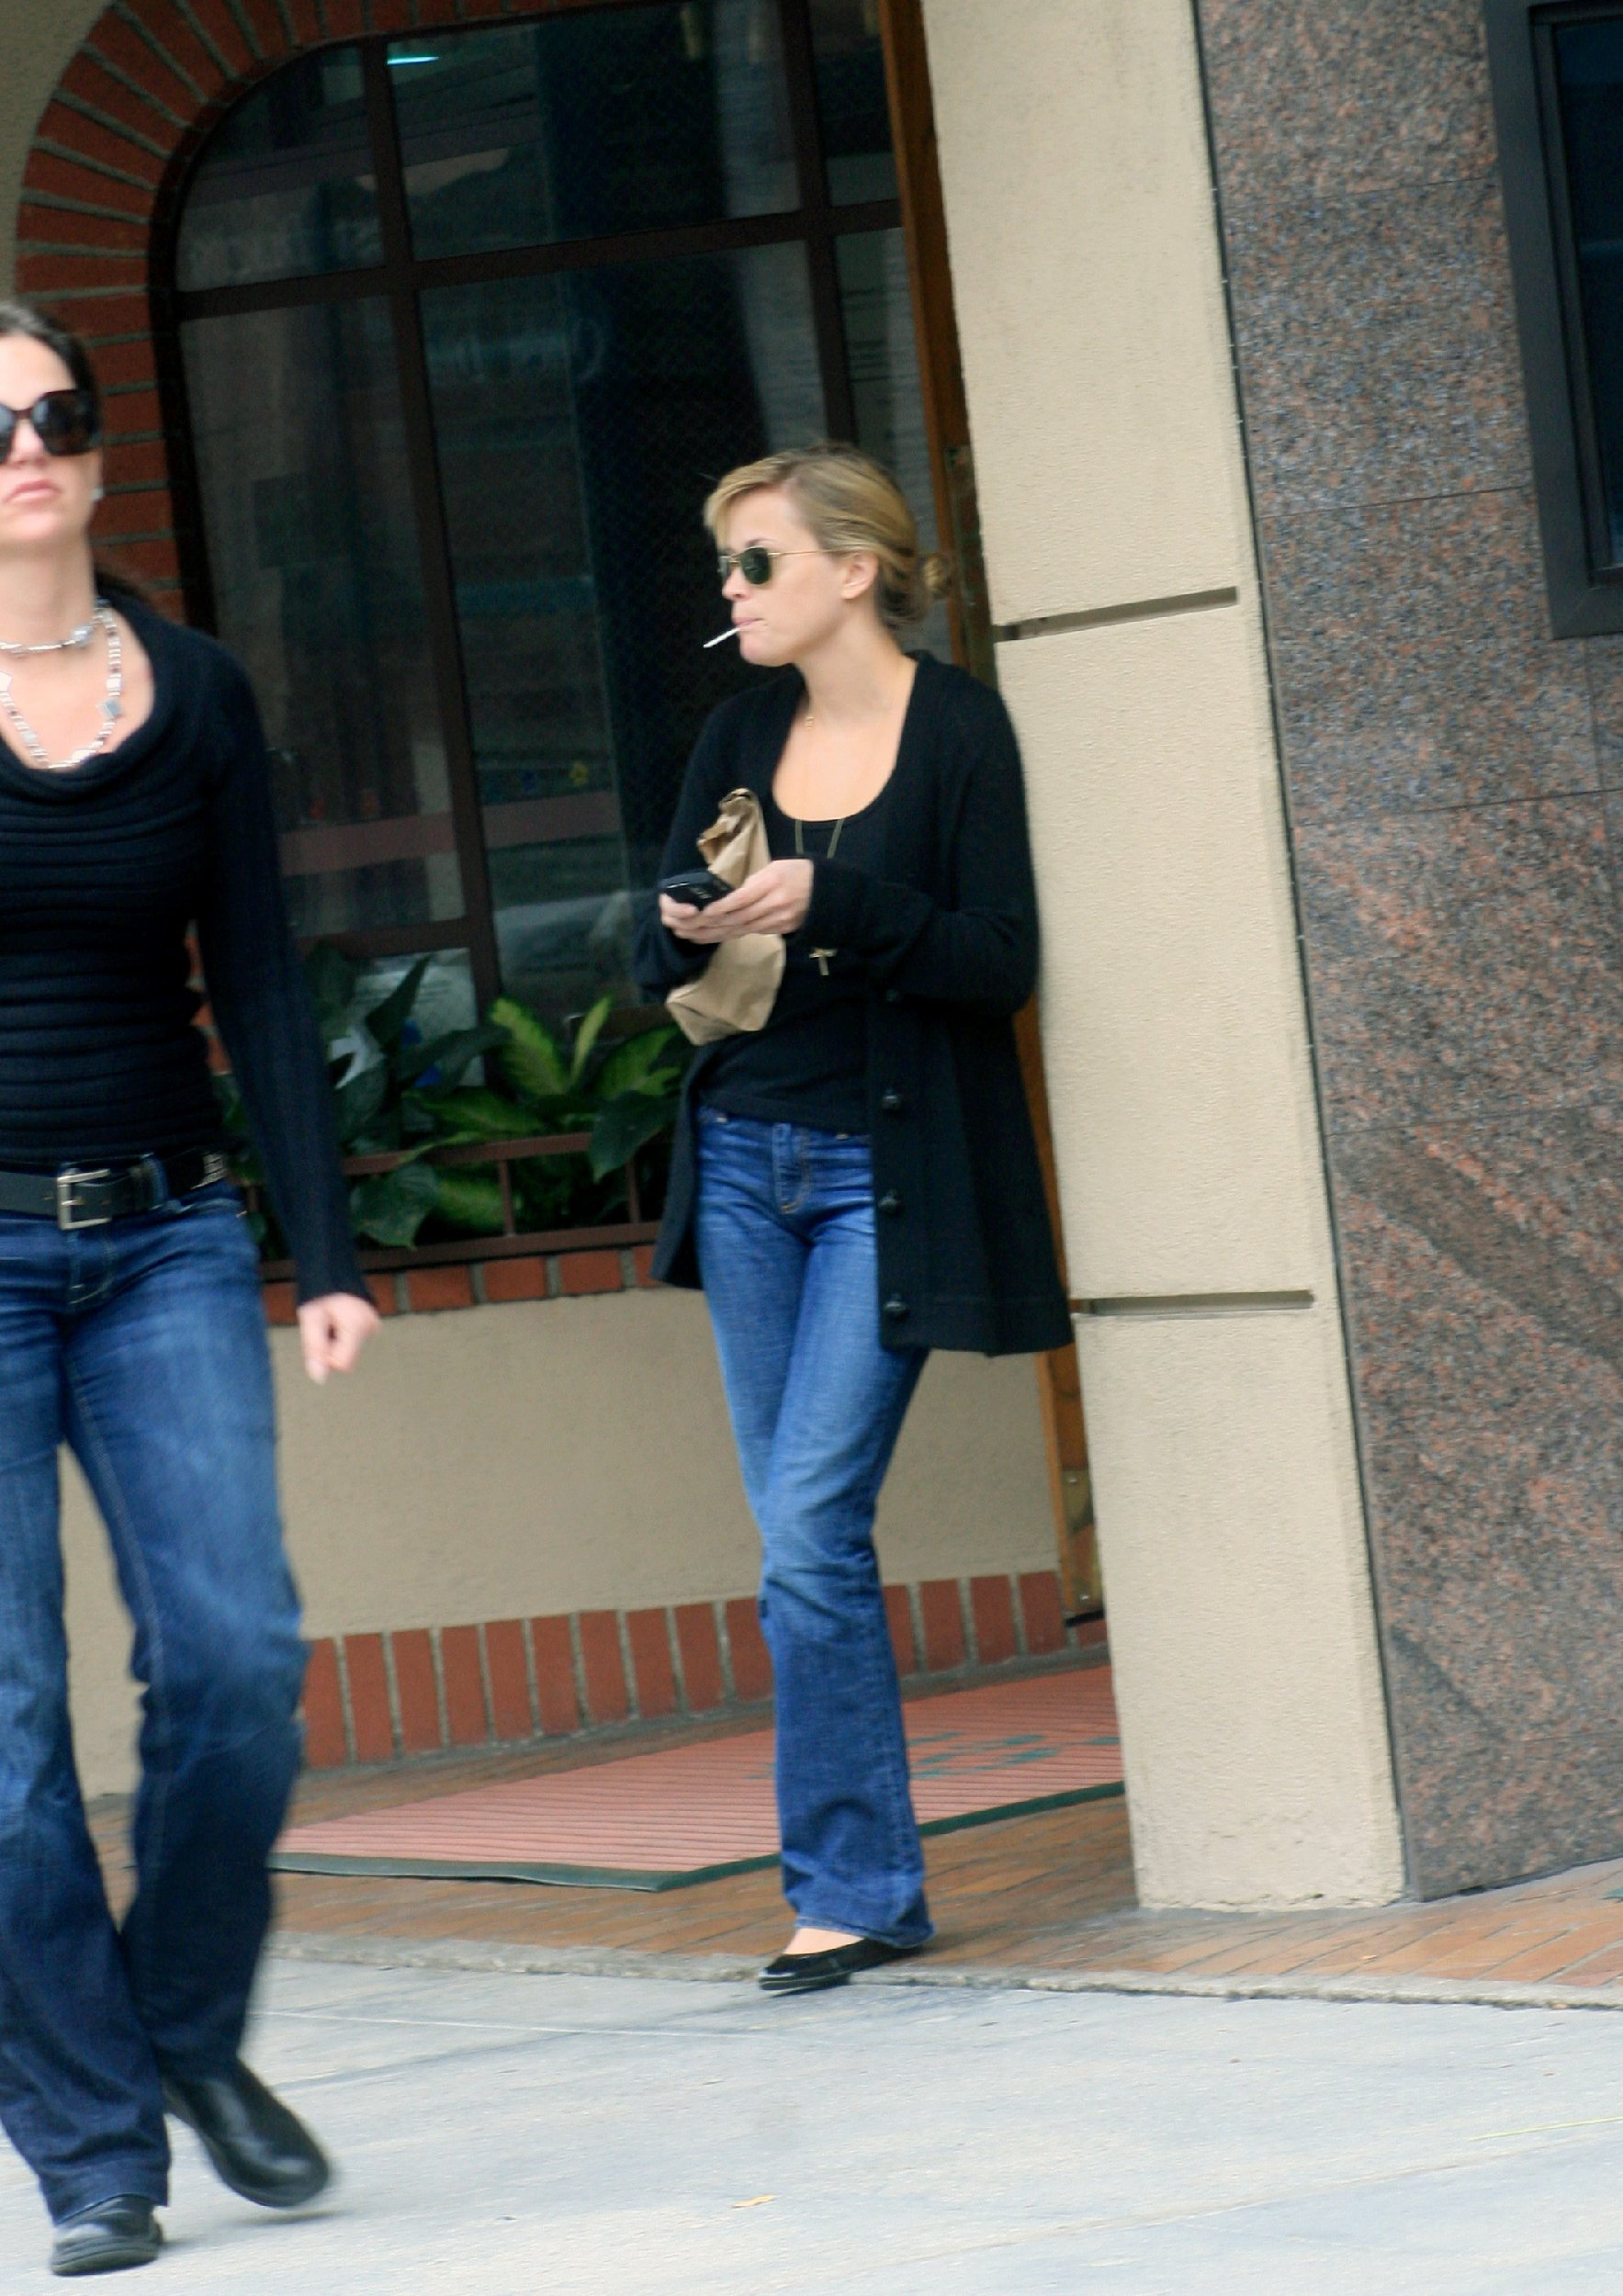 59131_celeb-city.eu_Reese_Witherspoon_leaves_a_medical_building_01_122_99lo.jpg